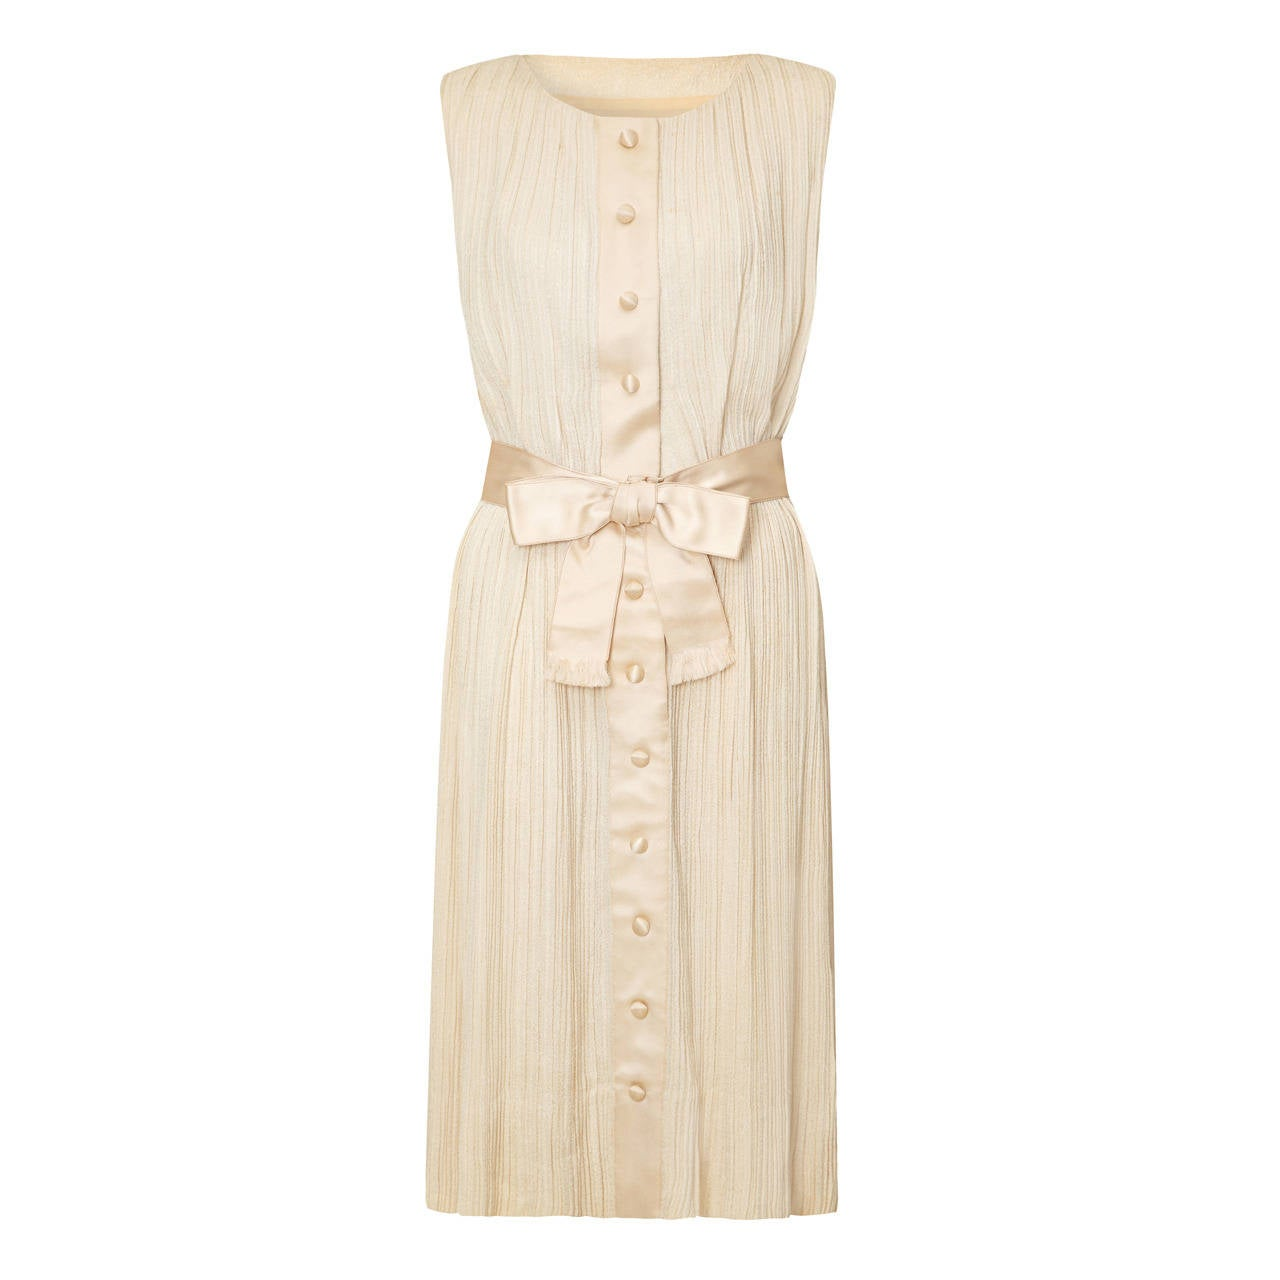 1960s Sarmi Cream Silk Dress